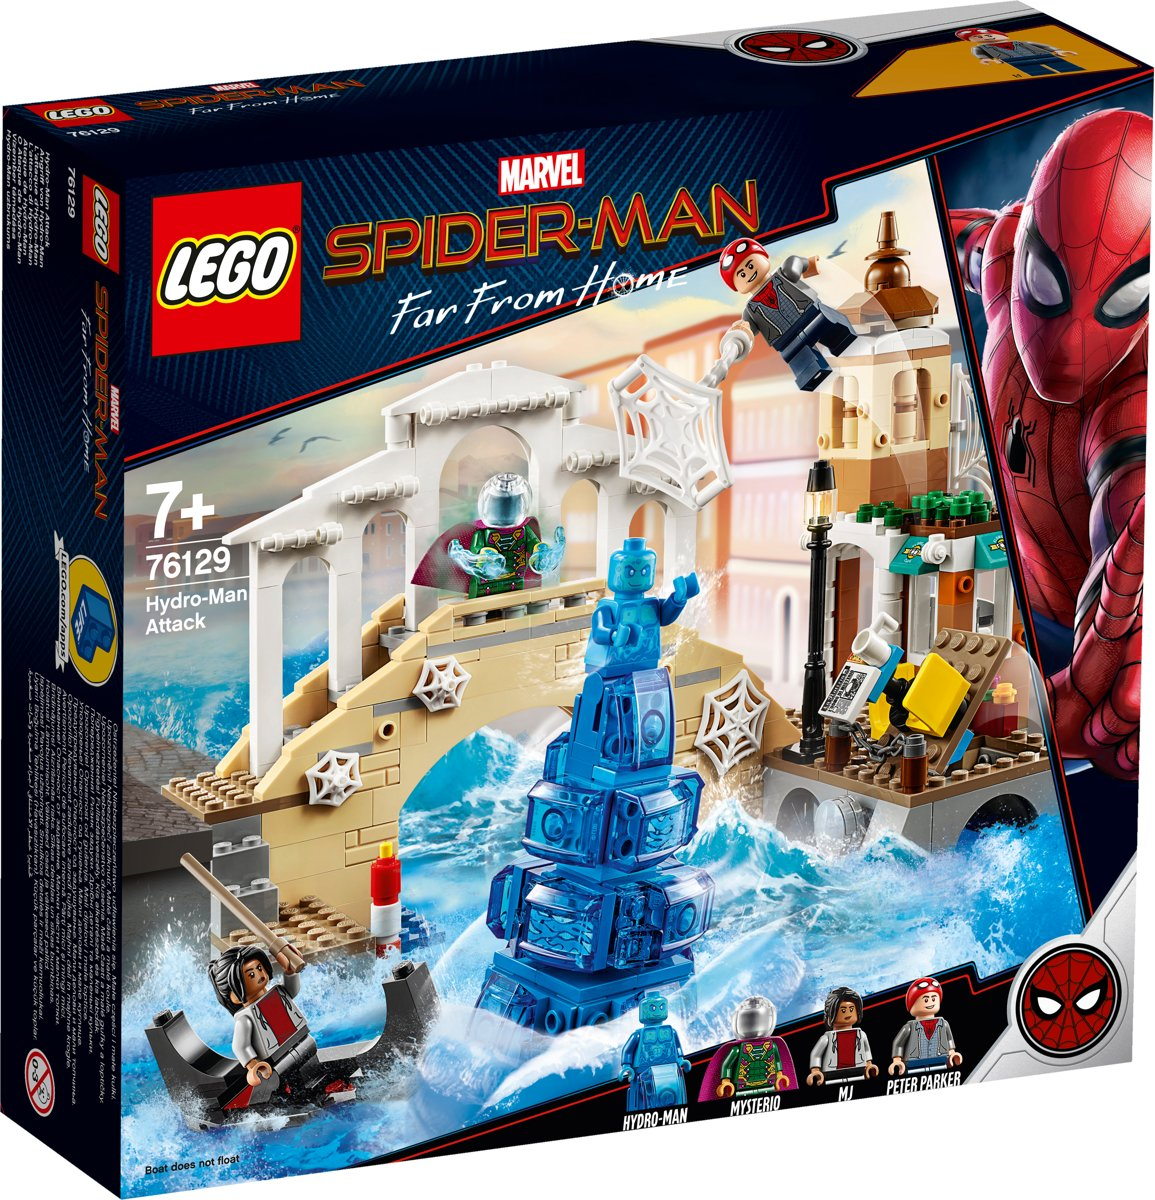 LEGO Spider-Man Hydro-Man Aanval - 76129